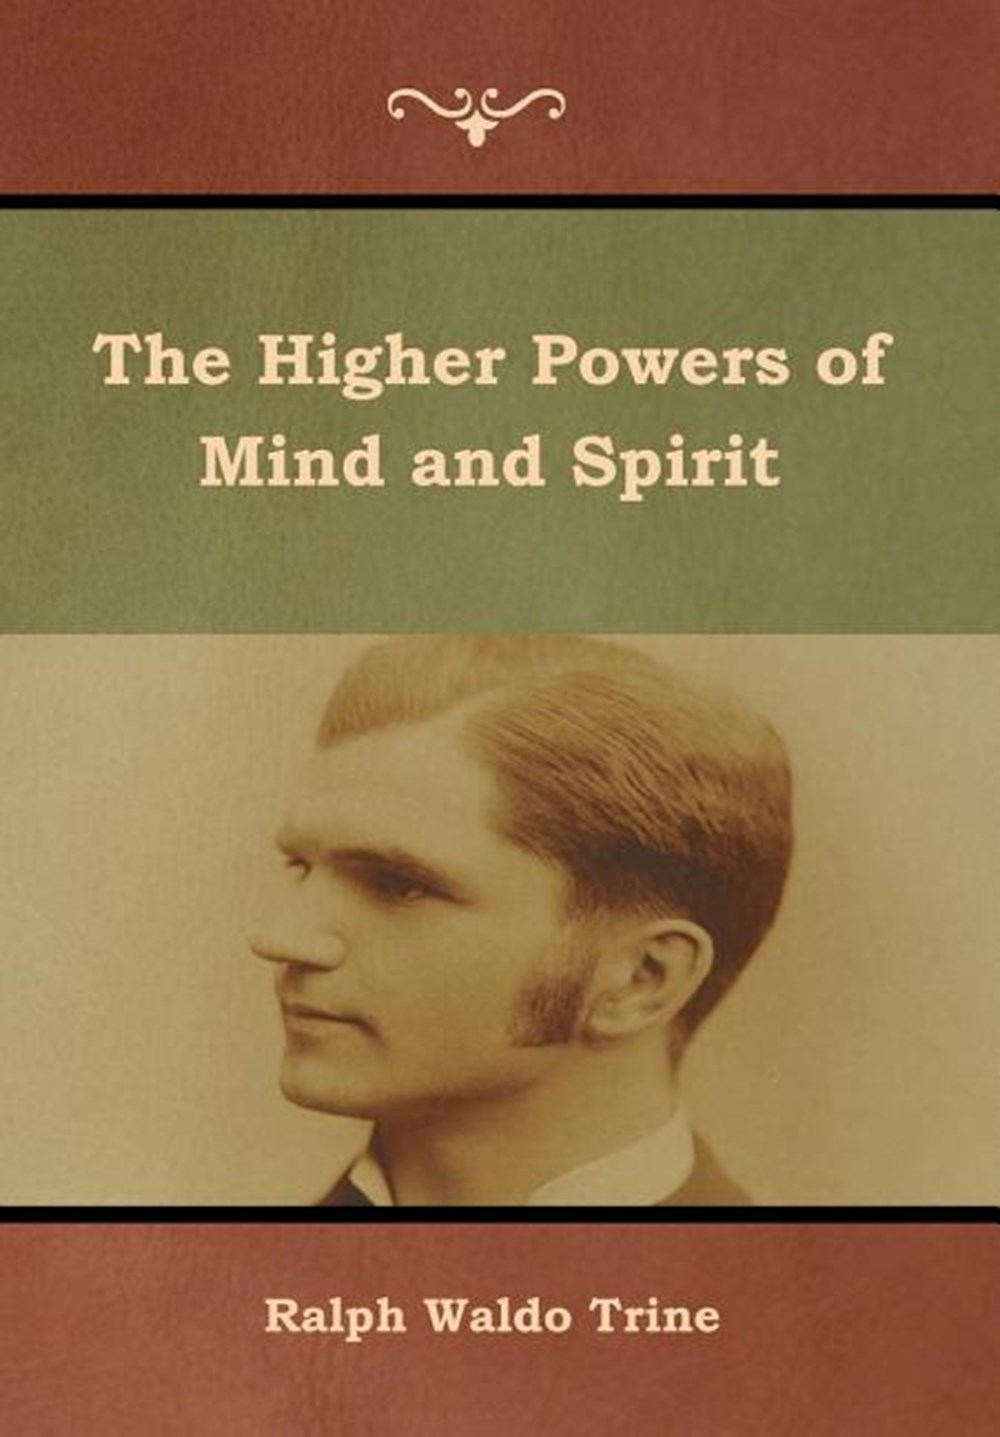 Higher Powers of Mind and Spirit